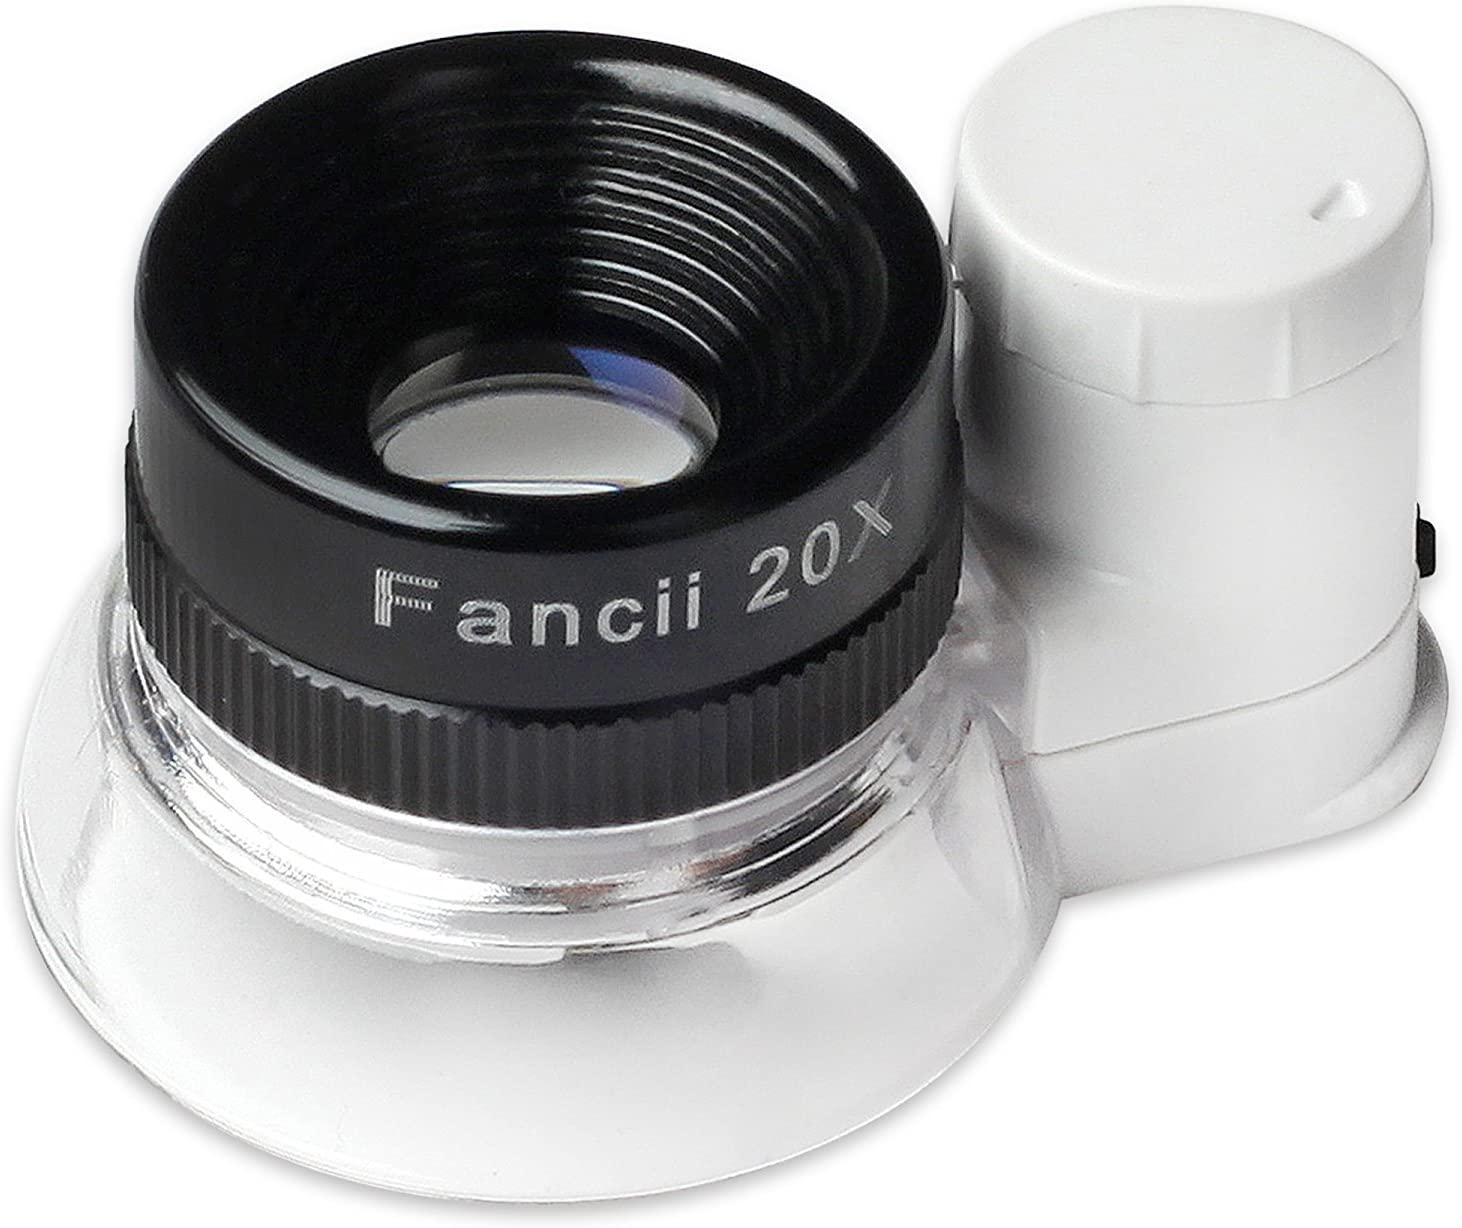 Fancii LED Illuminated 20X Jewelers Magnifier Gla Memphis Mall Animer and price revision Triplet Loupe